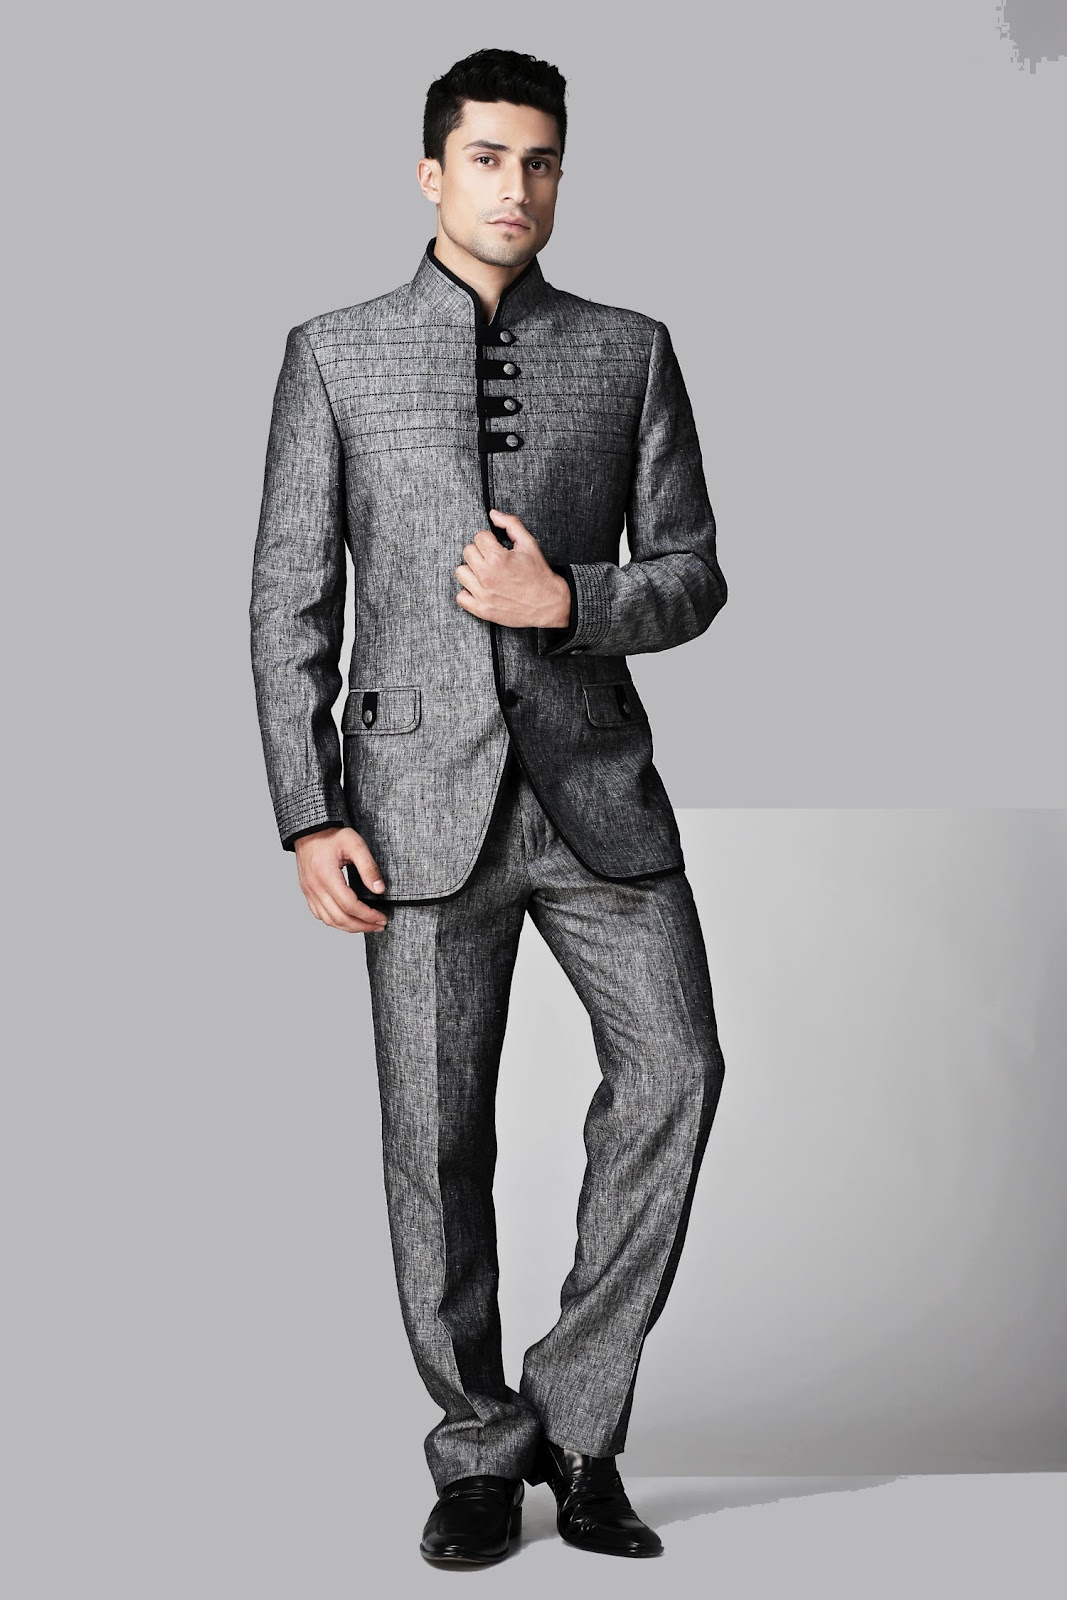 Modern 3 Piece Suits for Men | Three Piece Suit | Indian Office ...